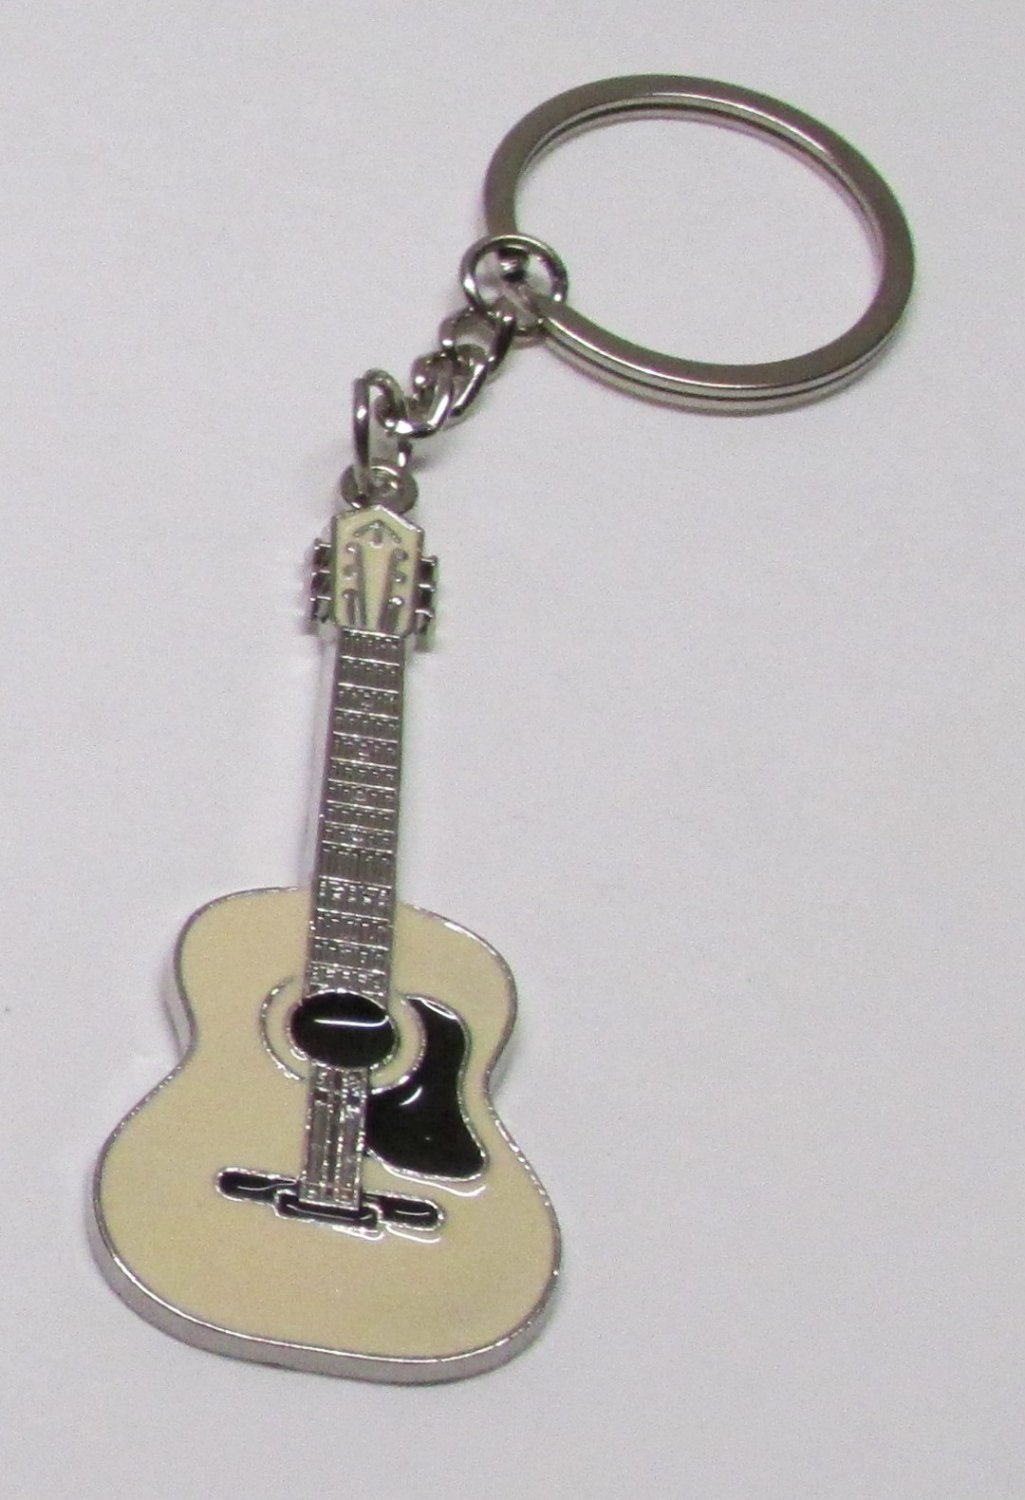 ACOUSTIC White GUITAR Metal Alloy KEY CHAIN Ring Keychain NEW